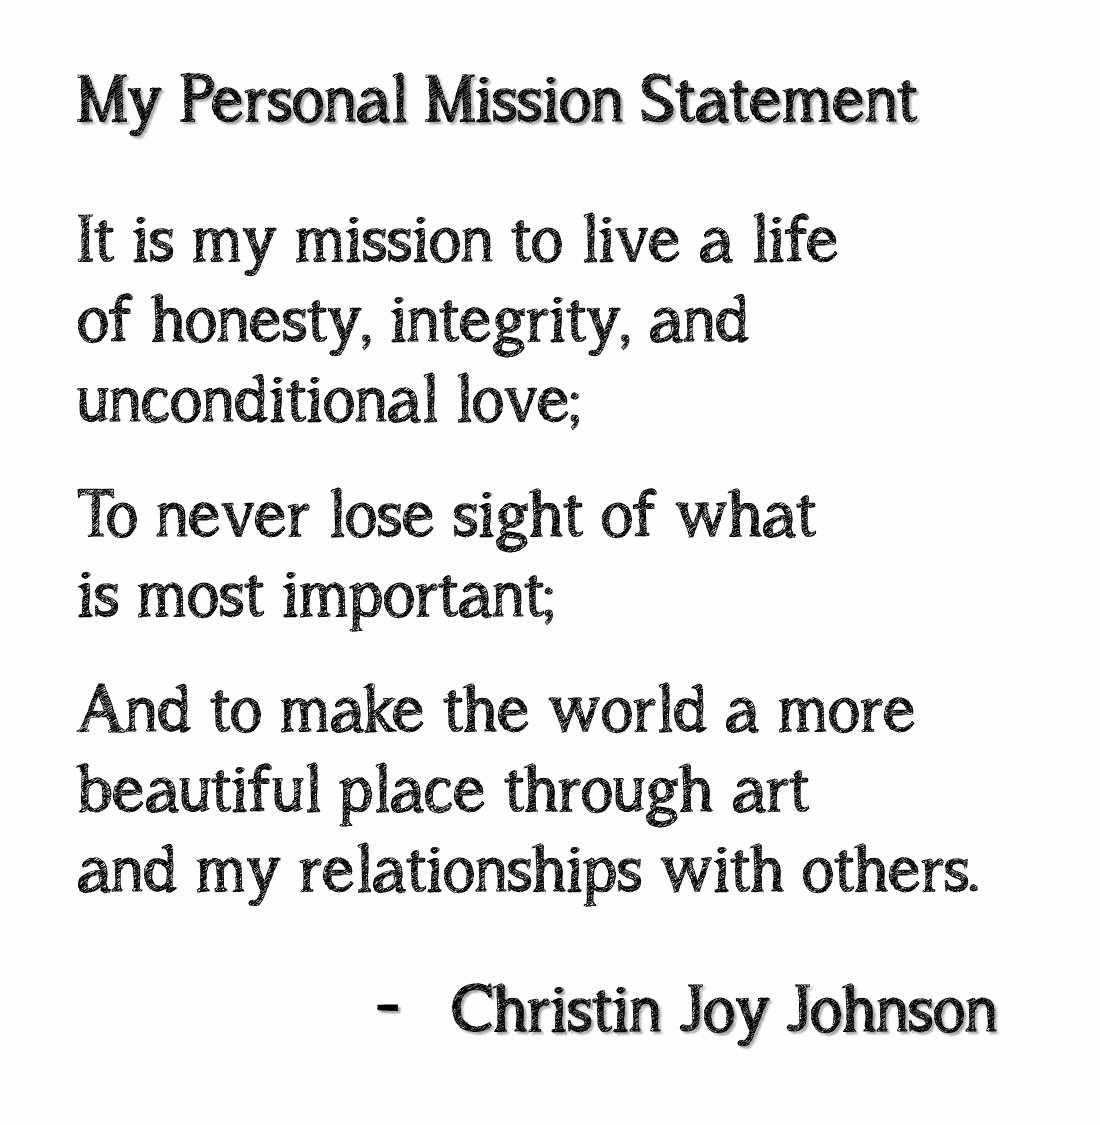 Personal Mission Statement Samples Lovely Personal Mission Statement